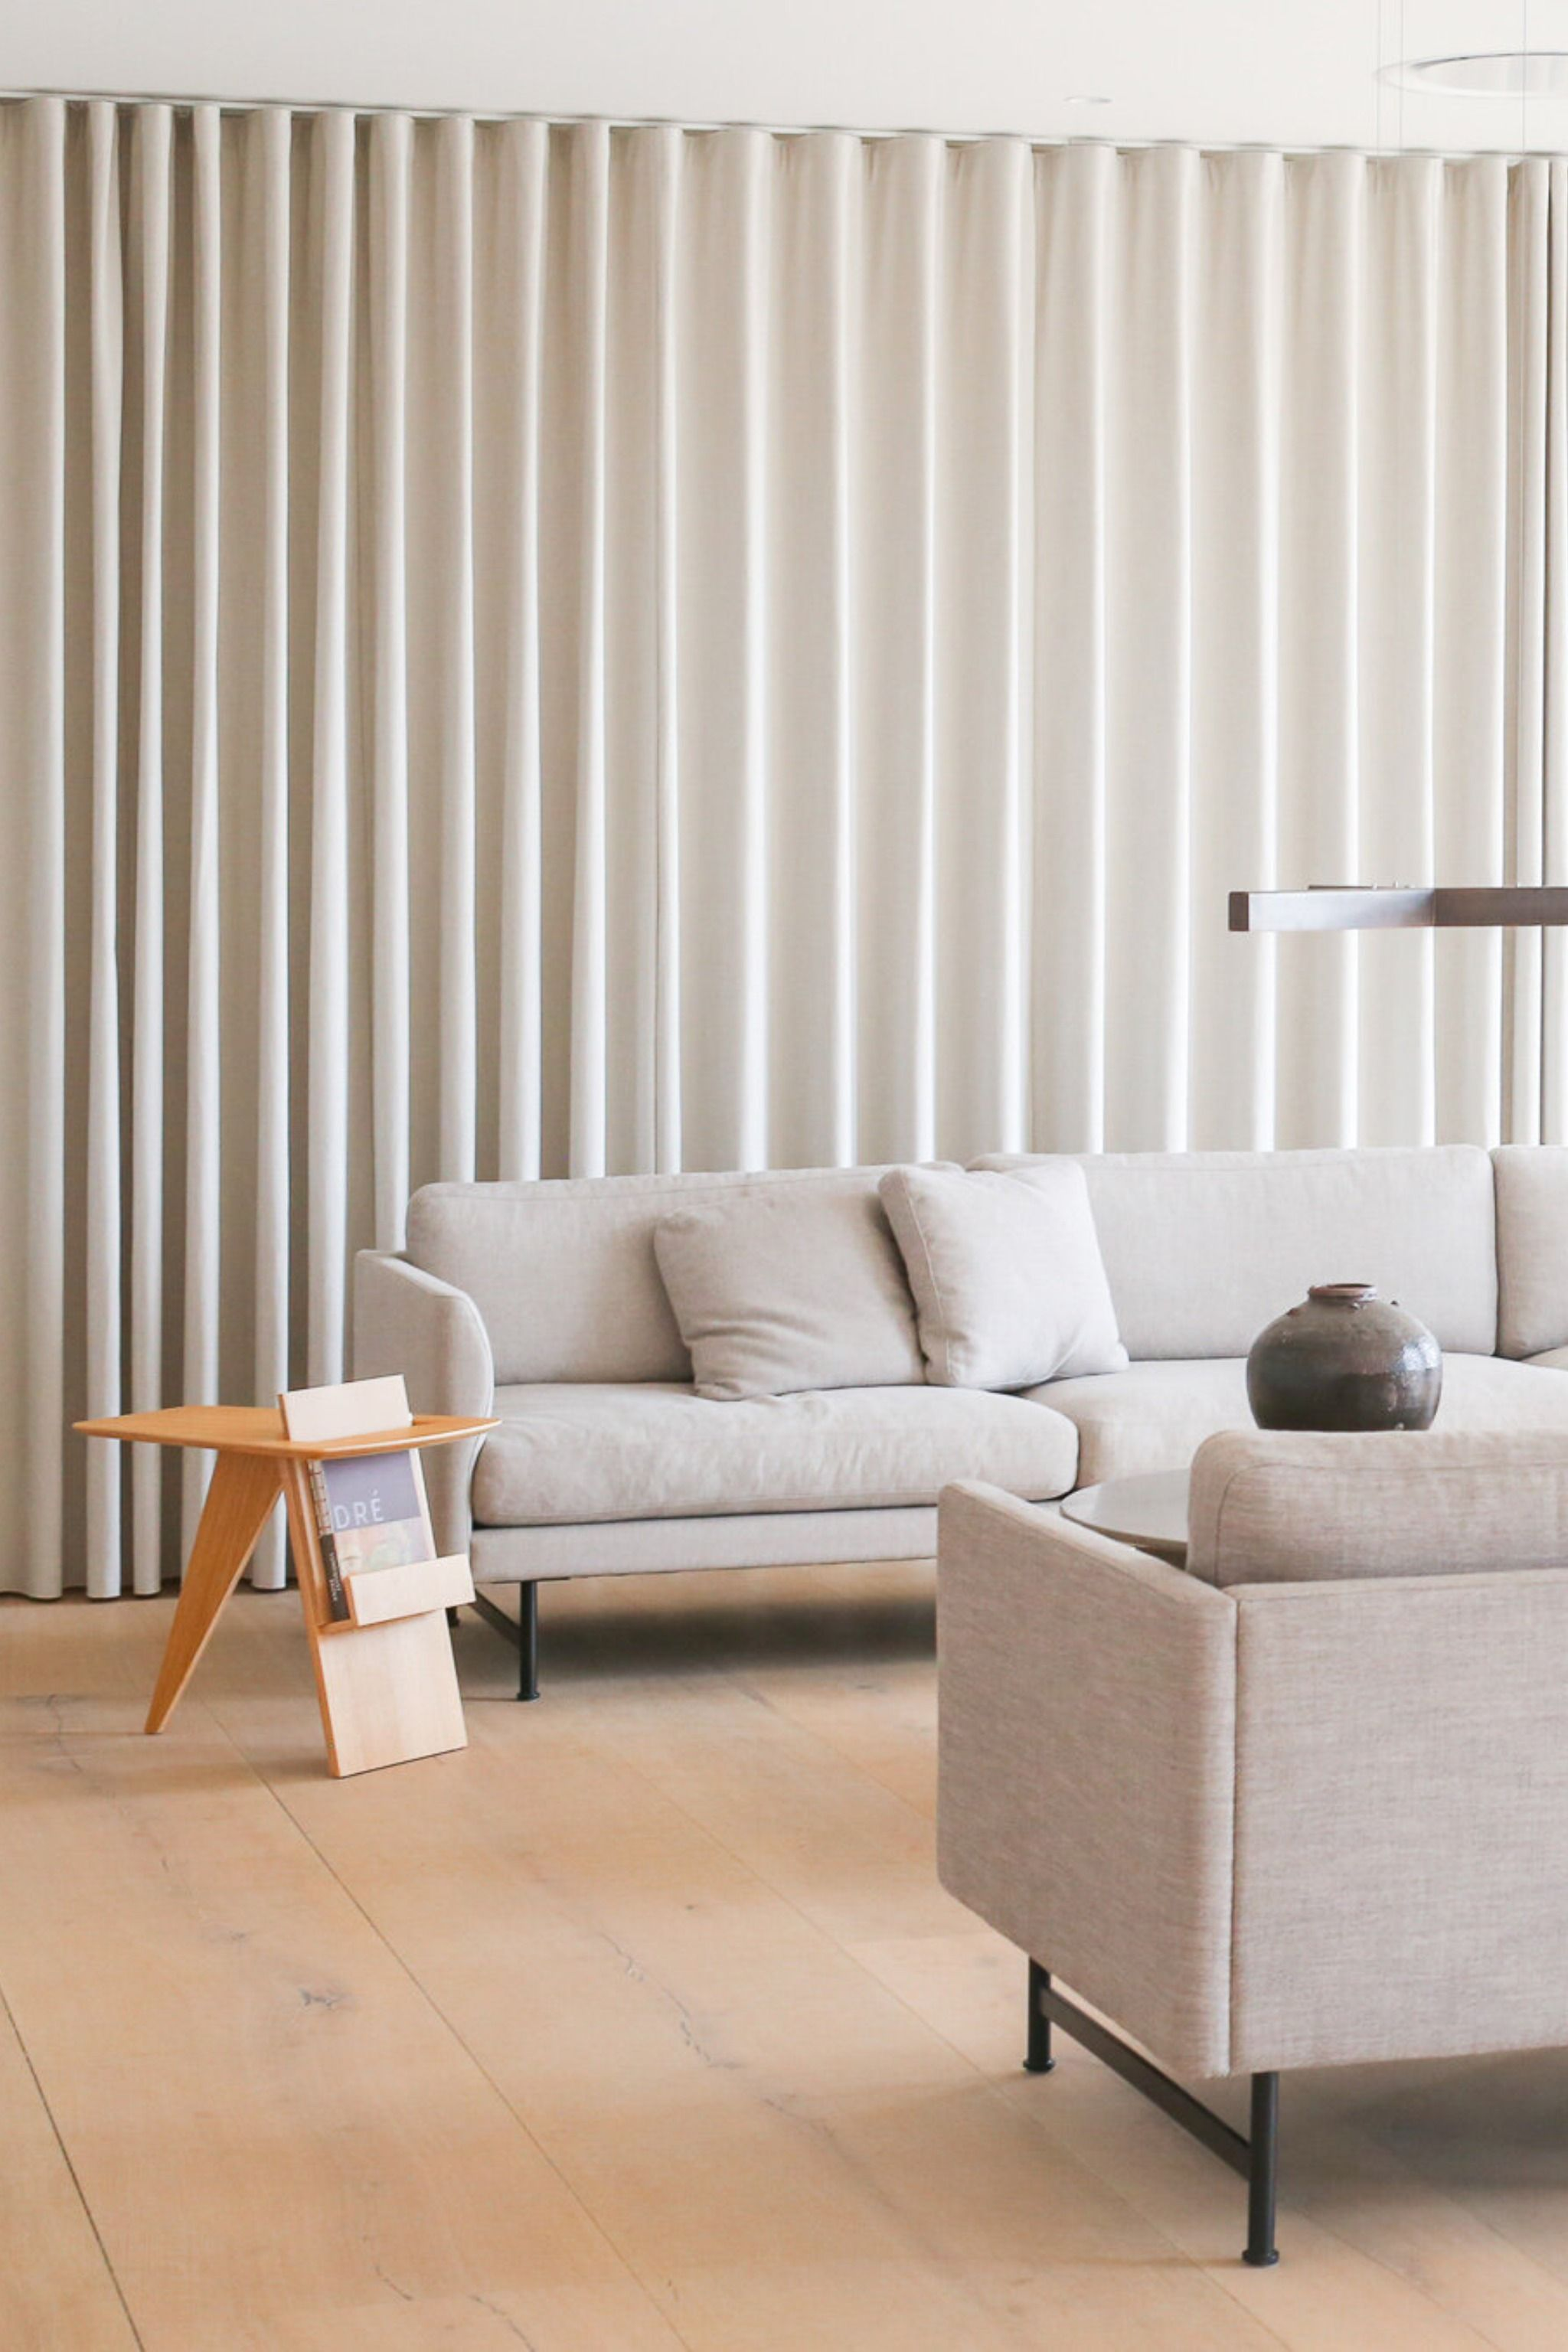 Calmo Sofa By Hugo Passos I Fredericia Furniture Fredericia Furniture Living Room Decor Inspiration Timeless Sofa